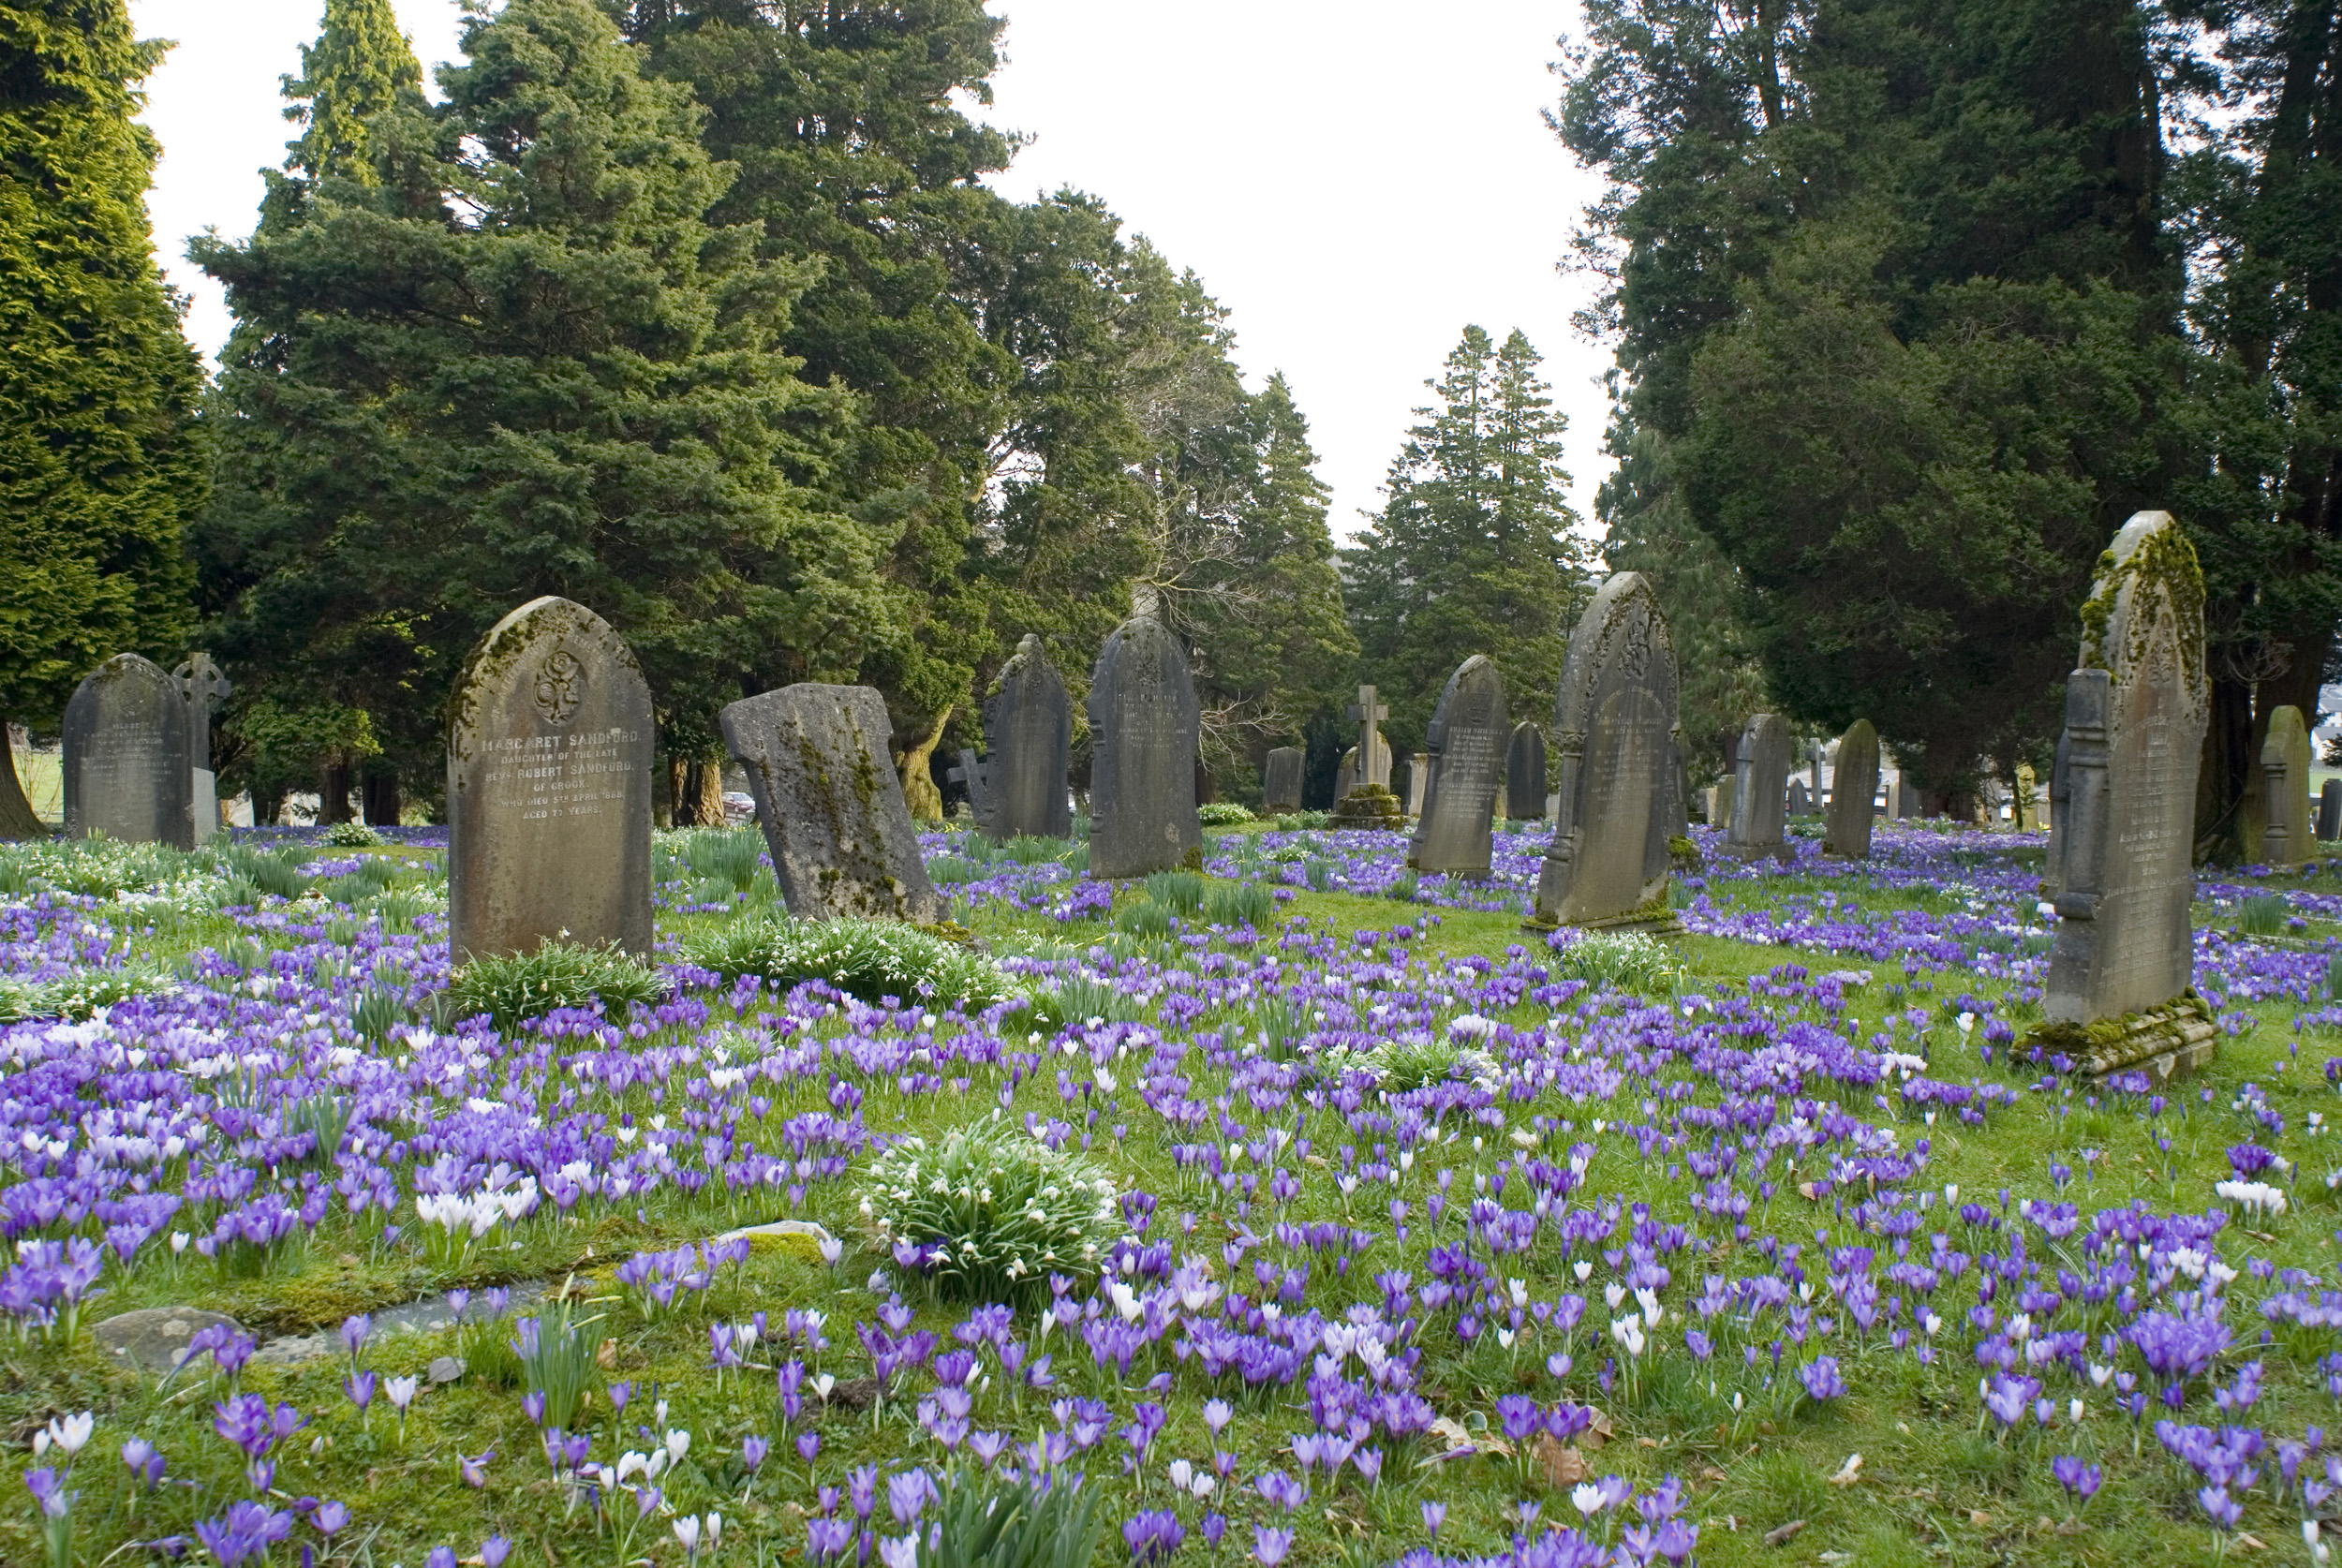 easter_graves.jpg - Easter country graveyard and graves blanketed with colourful flowering crocuses and surrounded by green trees